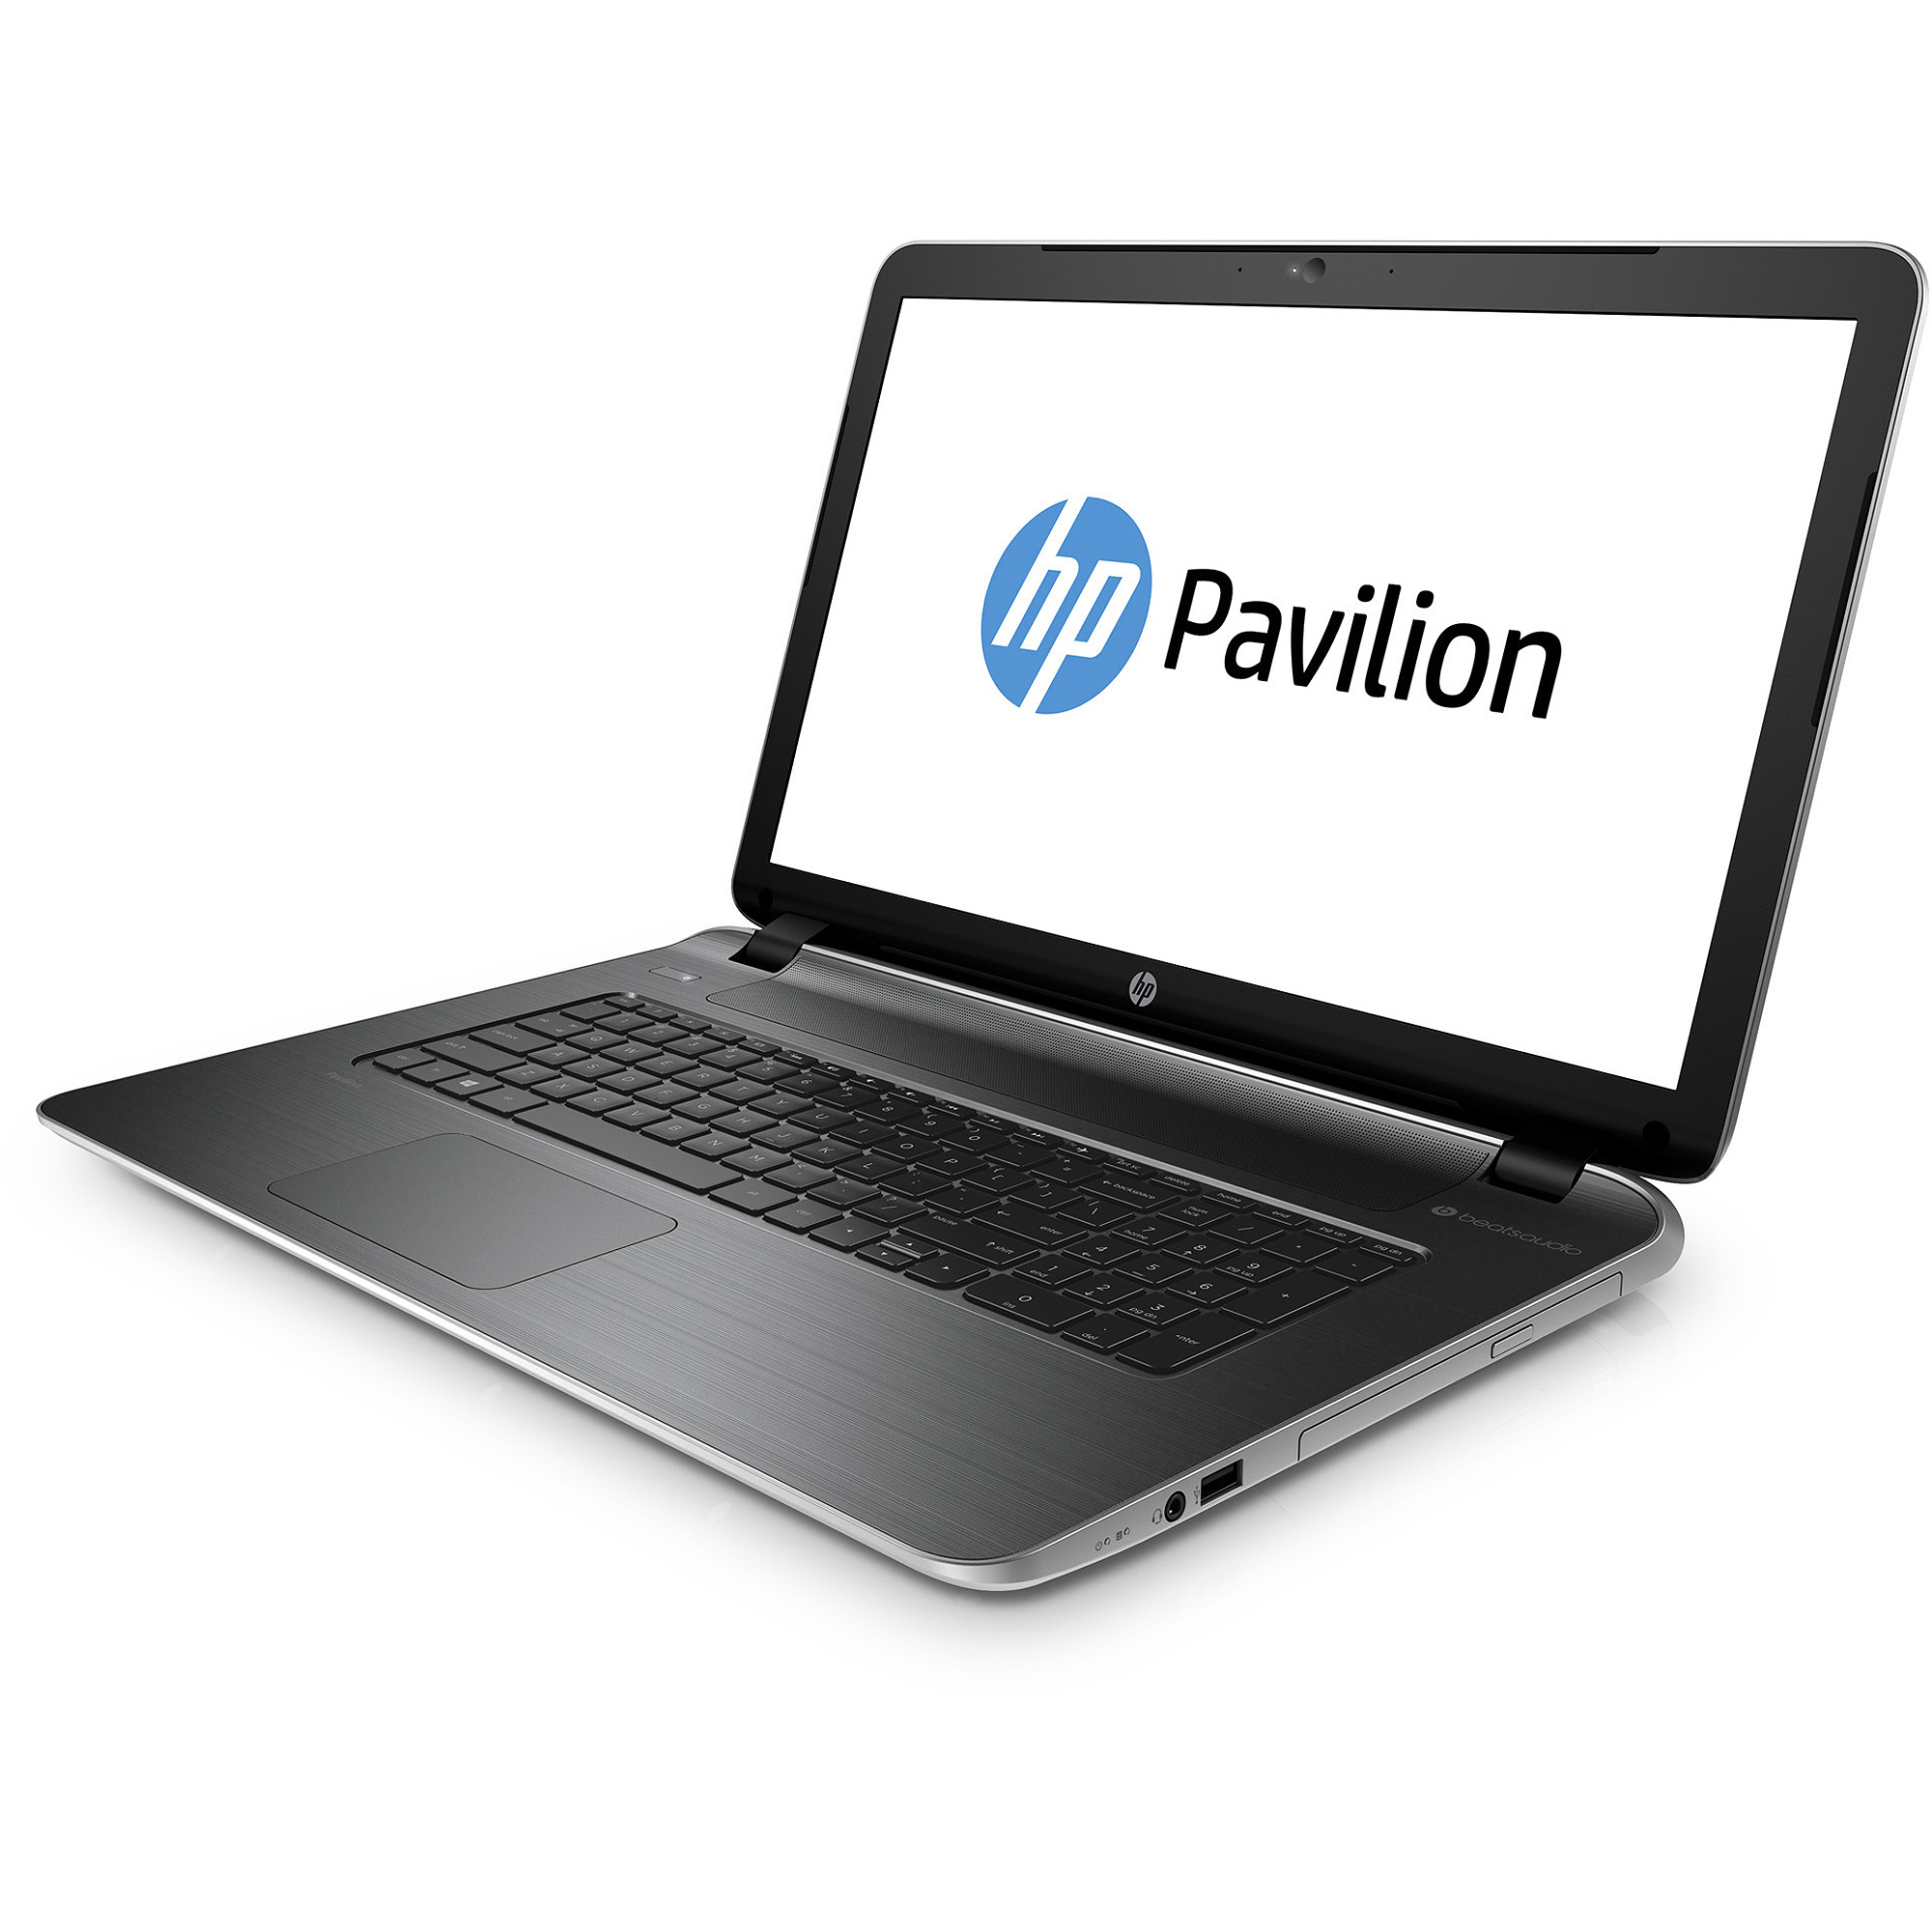 """HP Natural Silver 17.3"""" Pavilion 17-f010us Laptop PC with AMD A6-6310 Quad-Core Processor, 4GB Memory, 750GB Hard Drive and Windows 8.1"""